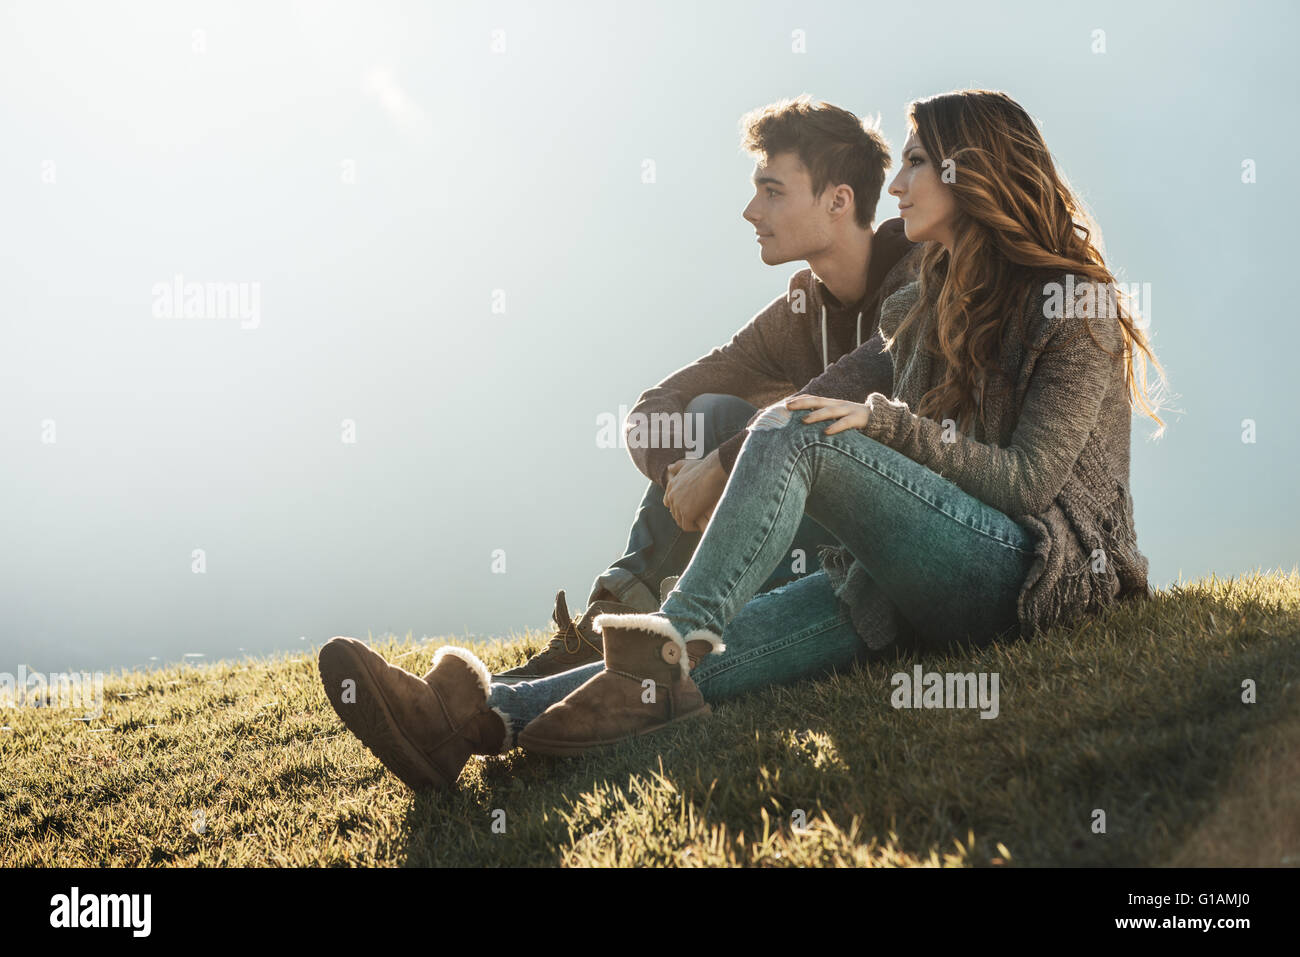 Smiling young couple sitting on grass during a sunny day, looking away and dreaming about their future - Stock Image